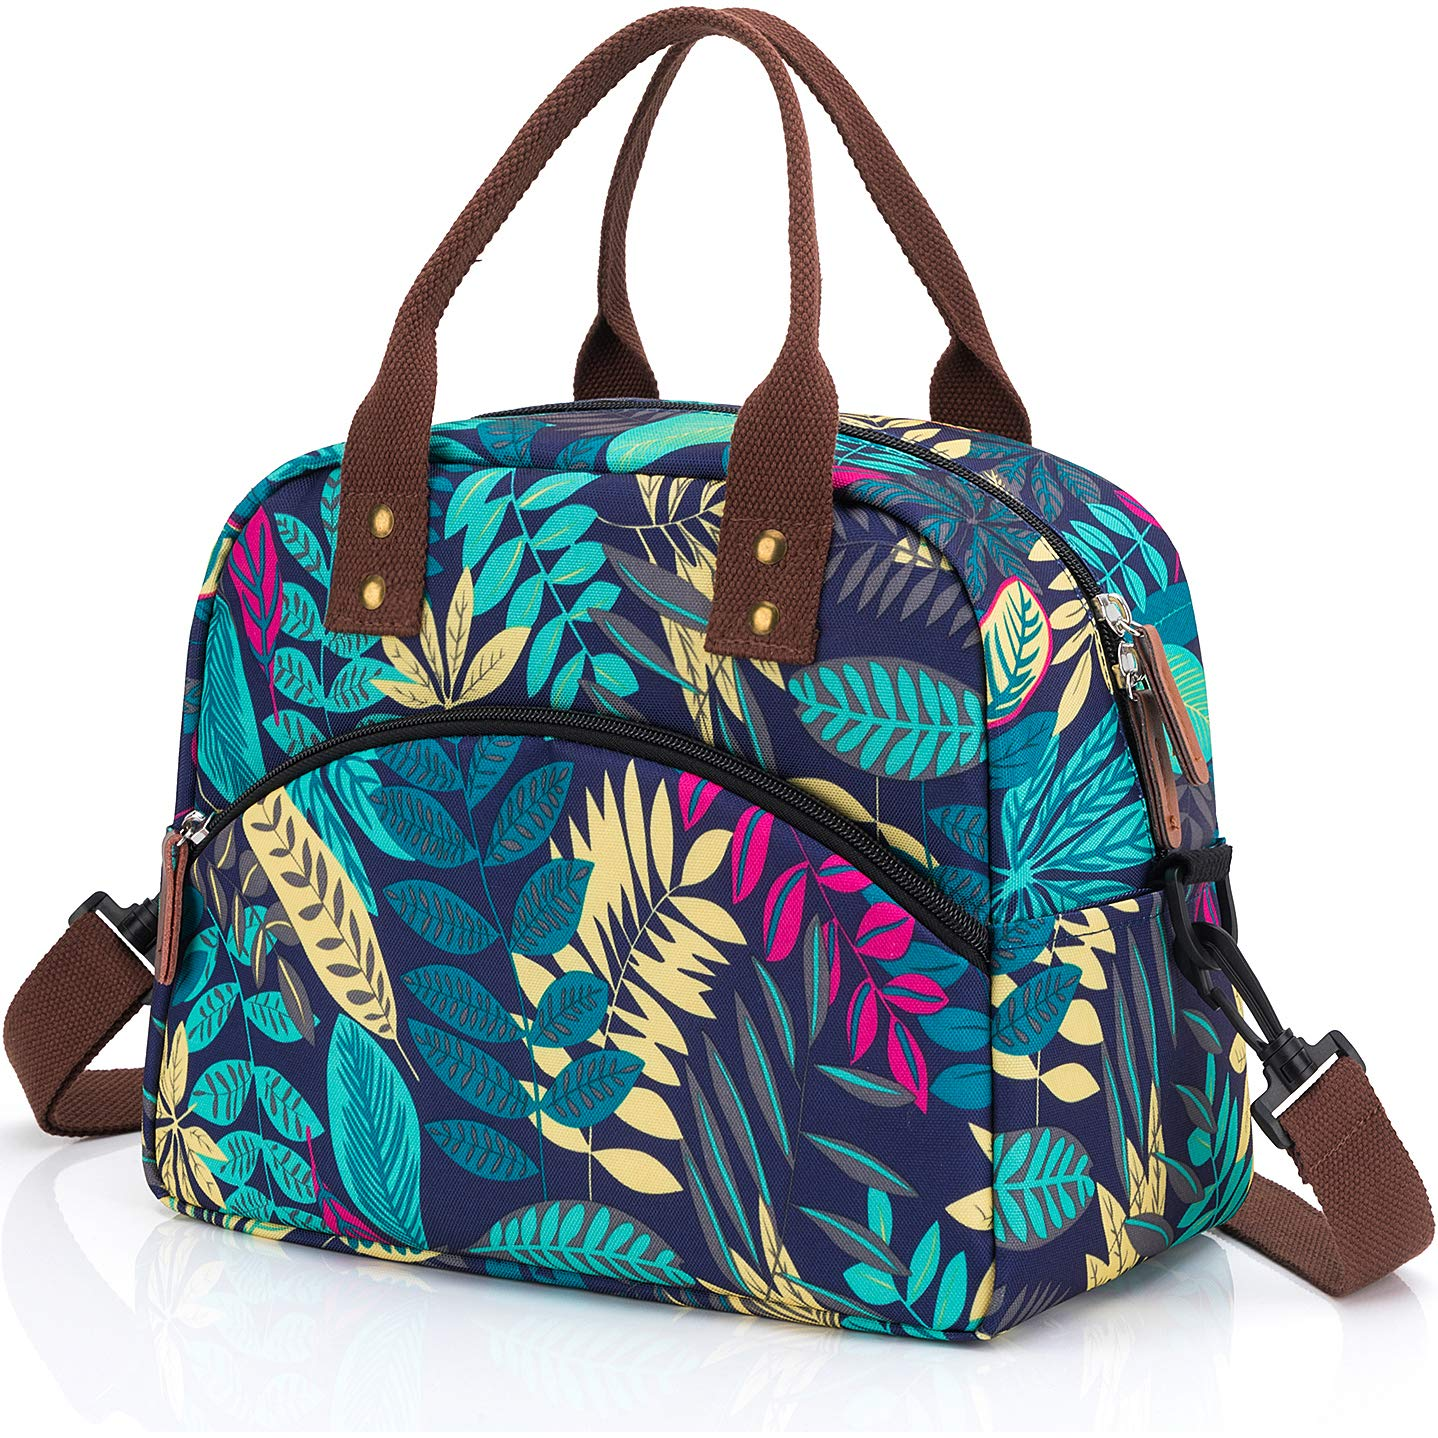 Insulated Lunch Bag with Detachable Shoulder Strap & Carry Handle,Leak Proof Reusable Lunch bag, Eco-friendly Cooler Bag Tote Bag,School Lunch Box for Kids,Men,Women (Blue Leaves)